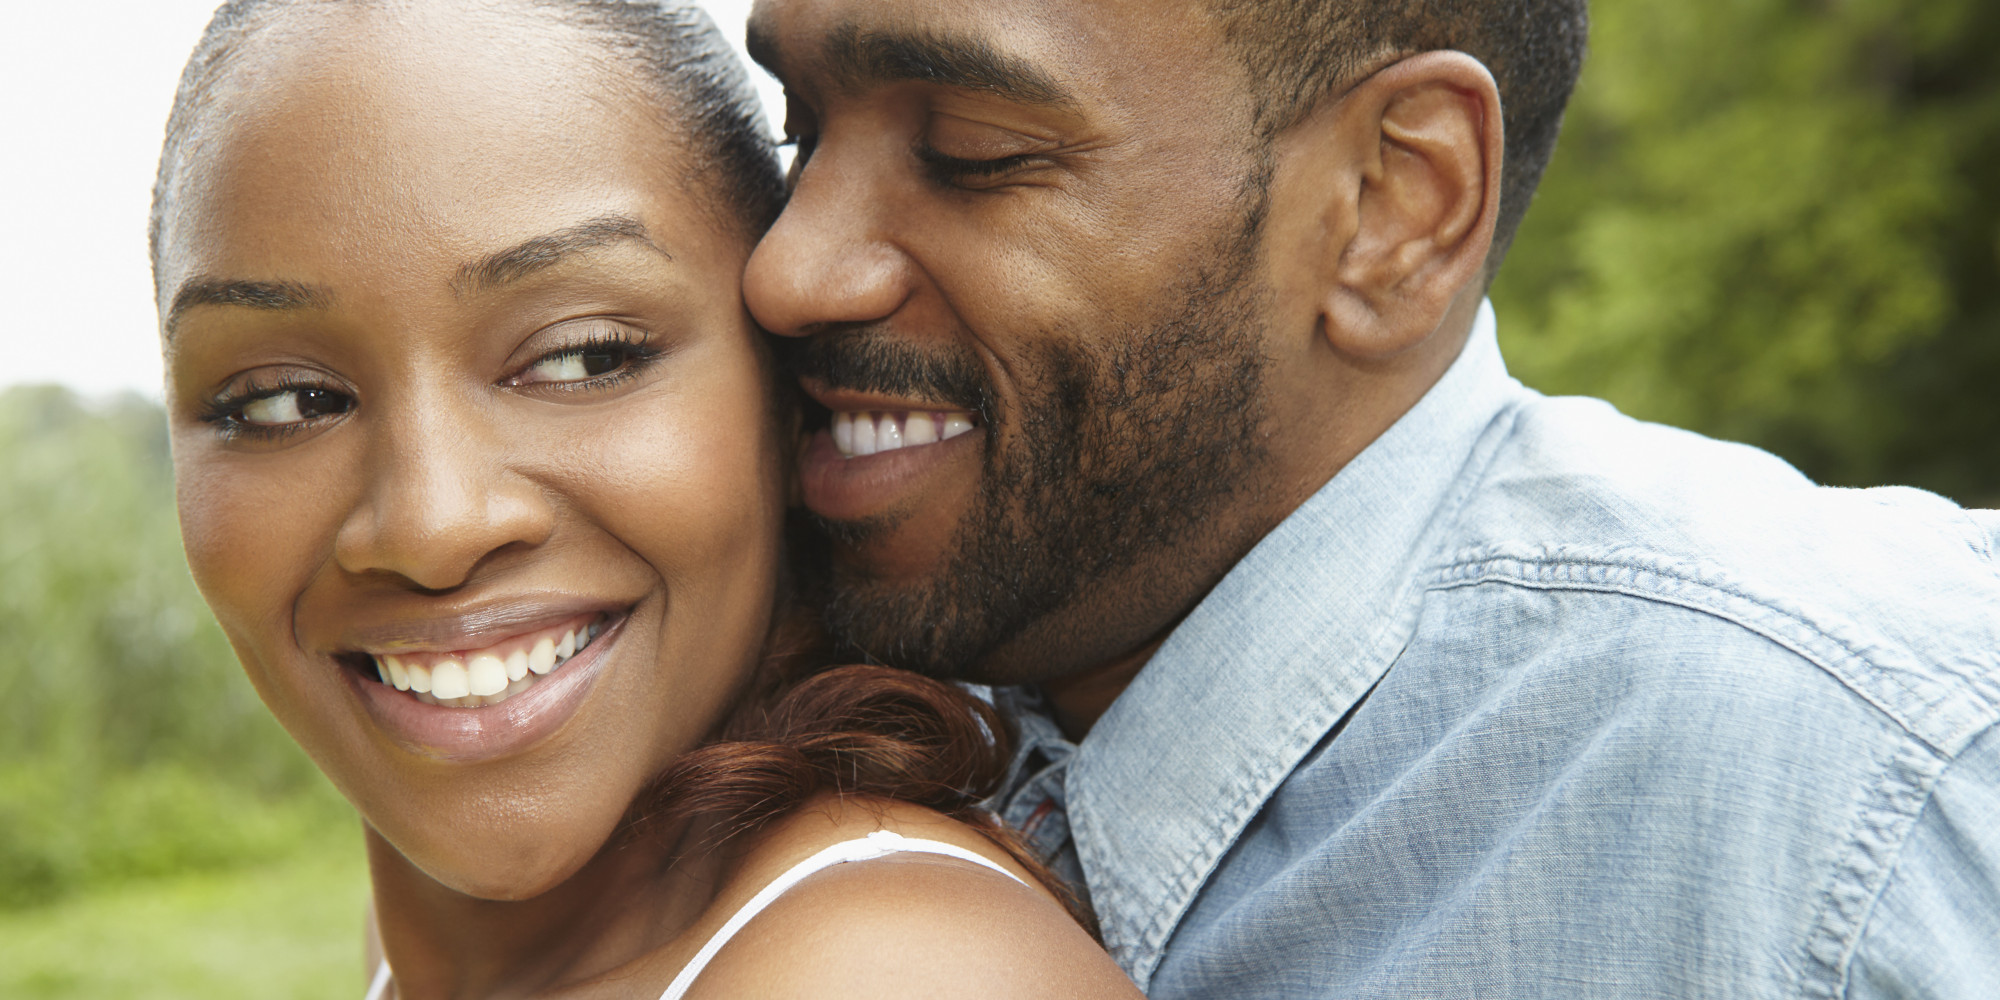 Dating An Older Woman: 27 Tips, Benefits, Pros And Cons